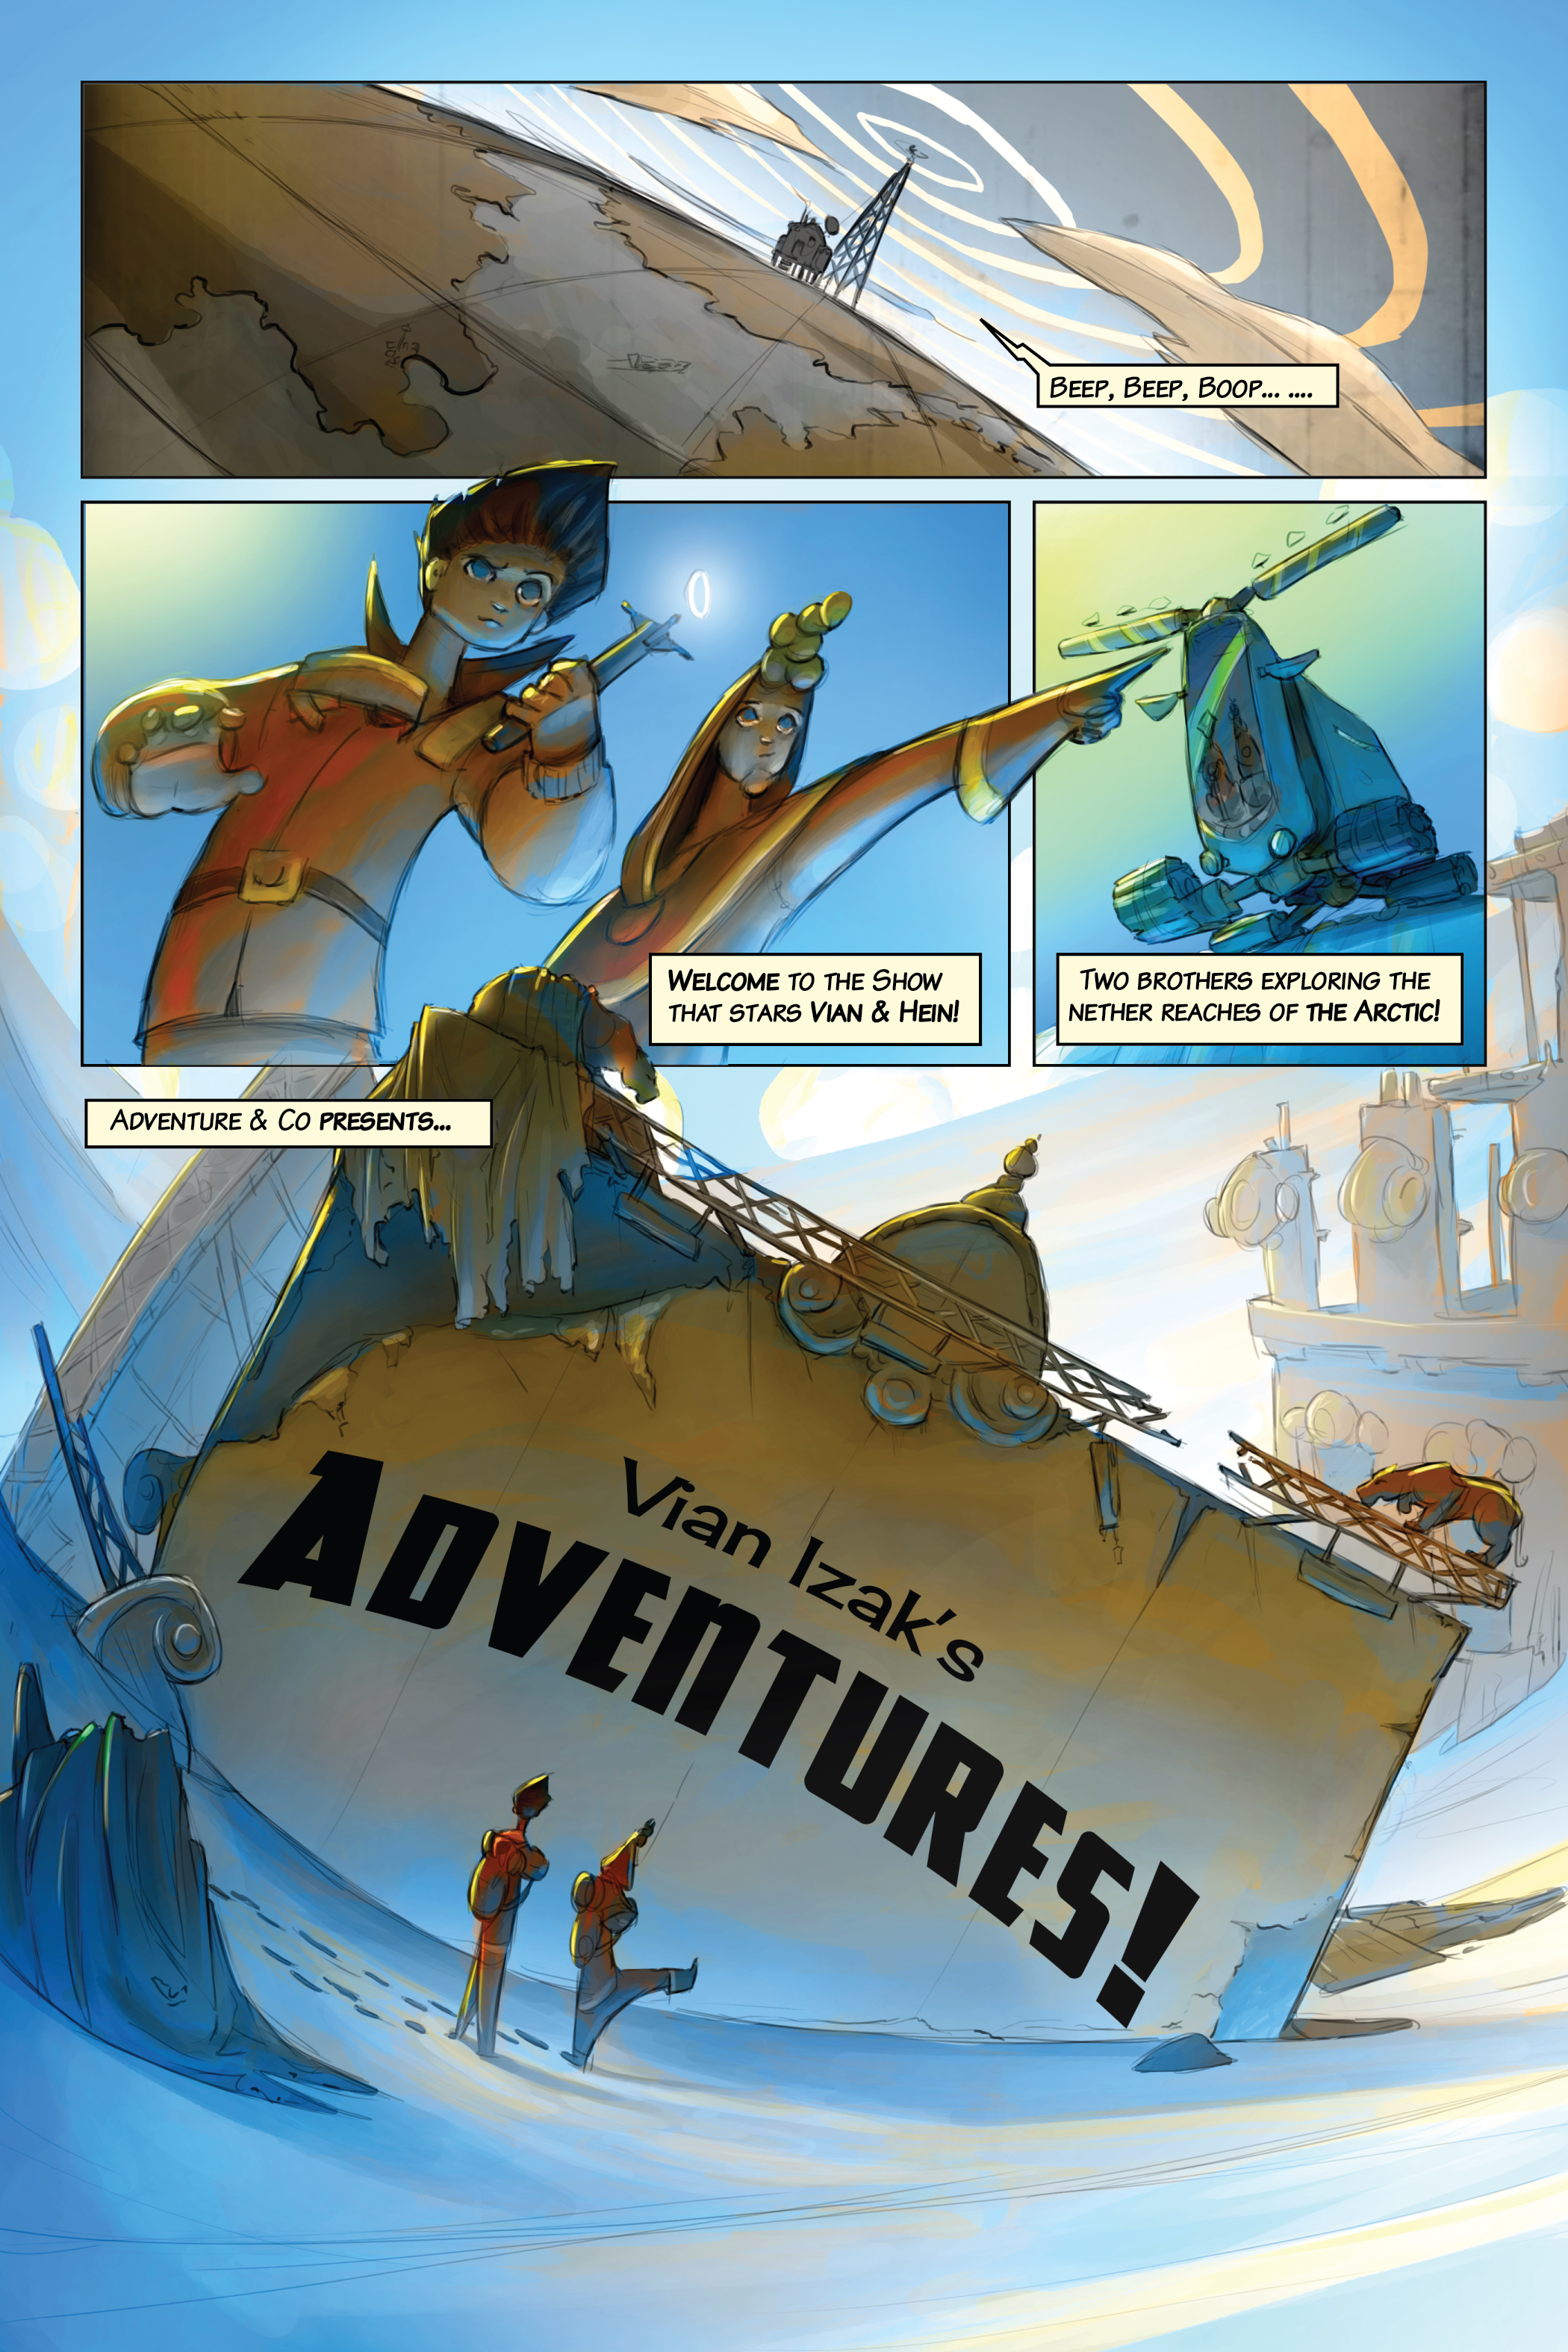 The first page of Vian Izak's Adventures!